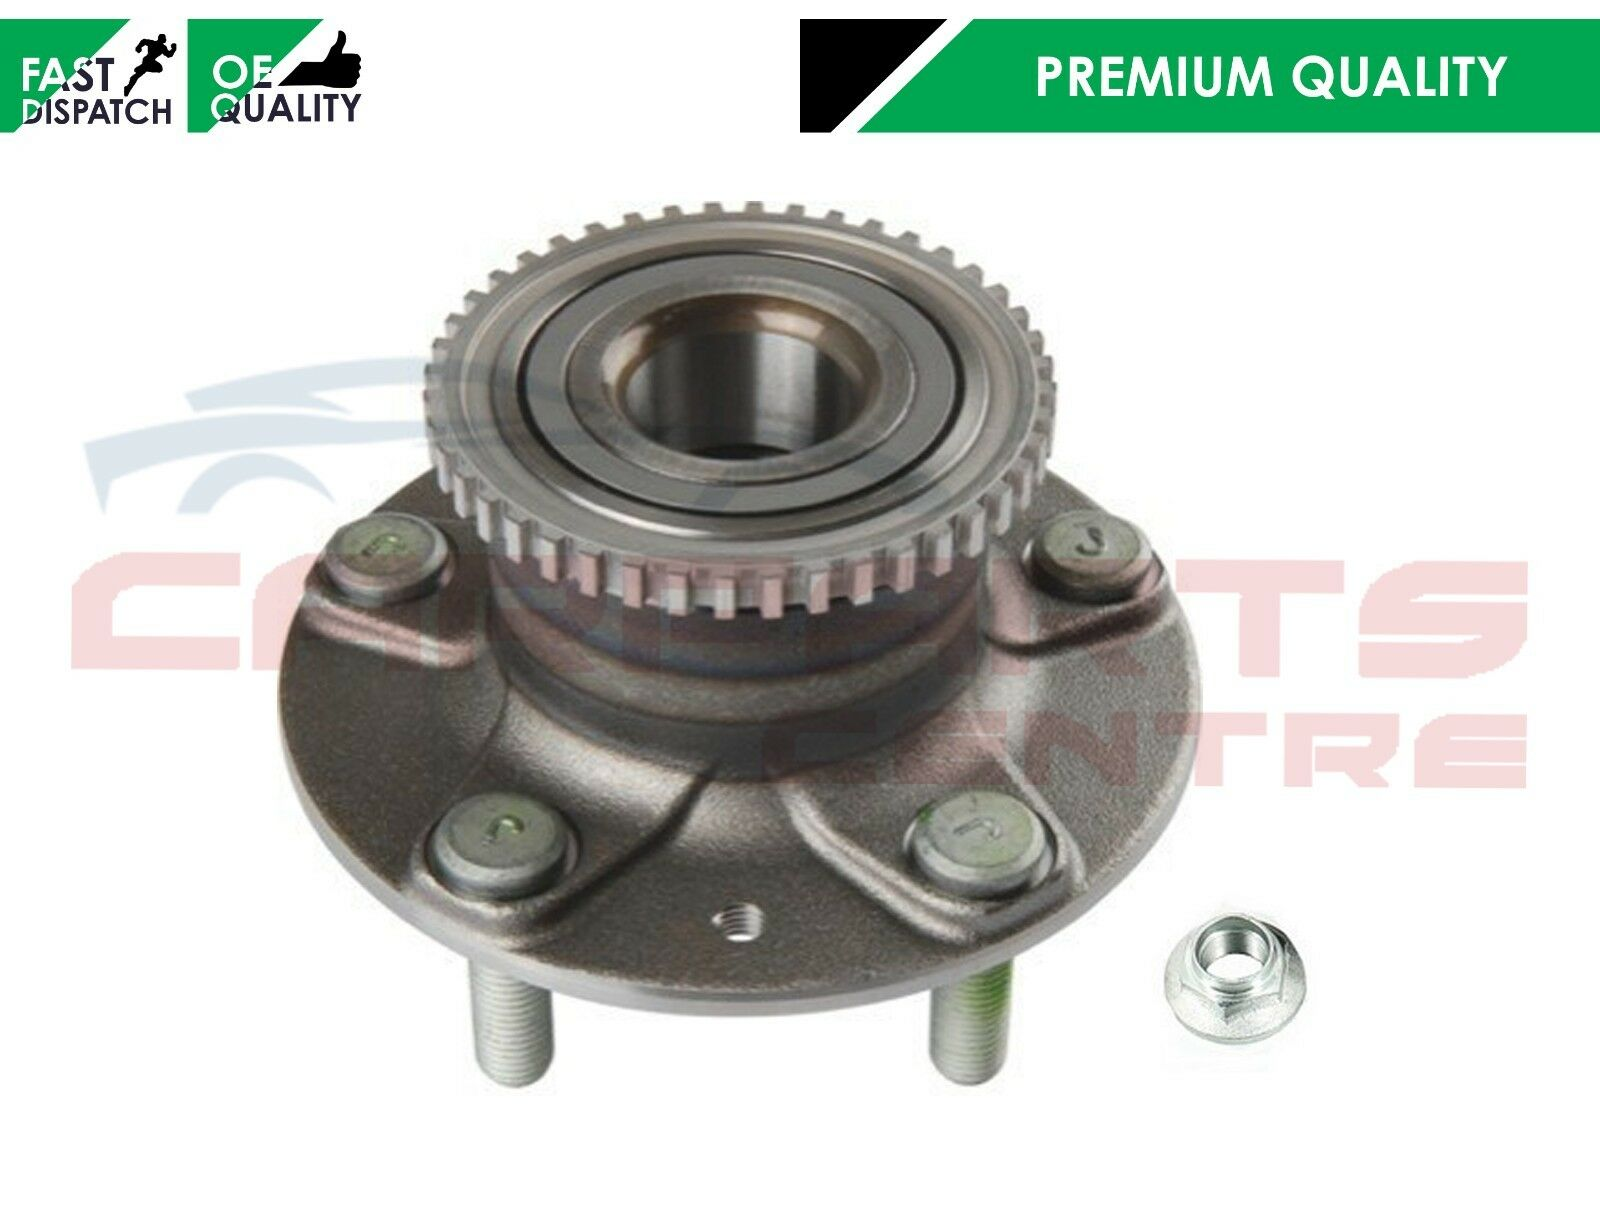 For Mazda Rx7 26 Twin Turbo Fd Import Front Wheel Bearing Hub Timing Belt Assembly